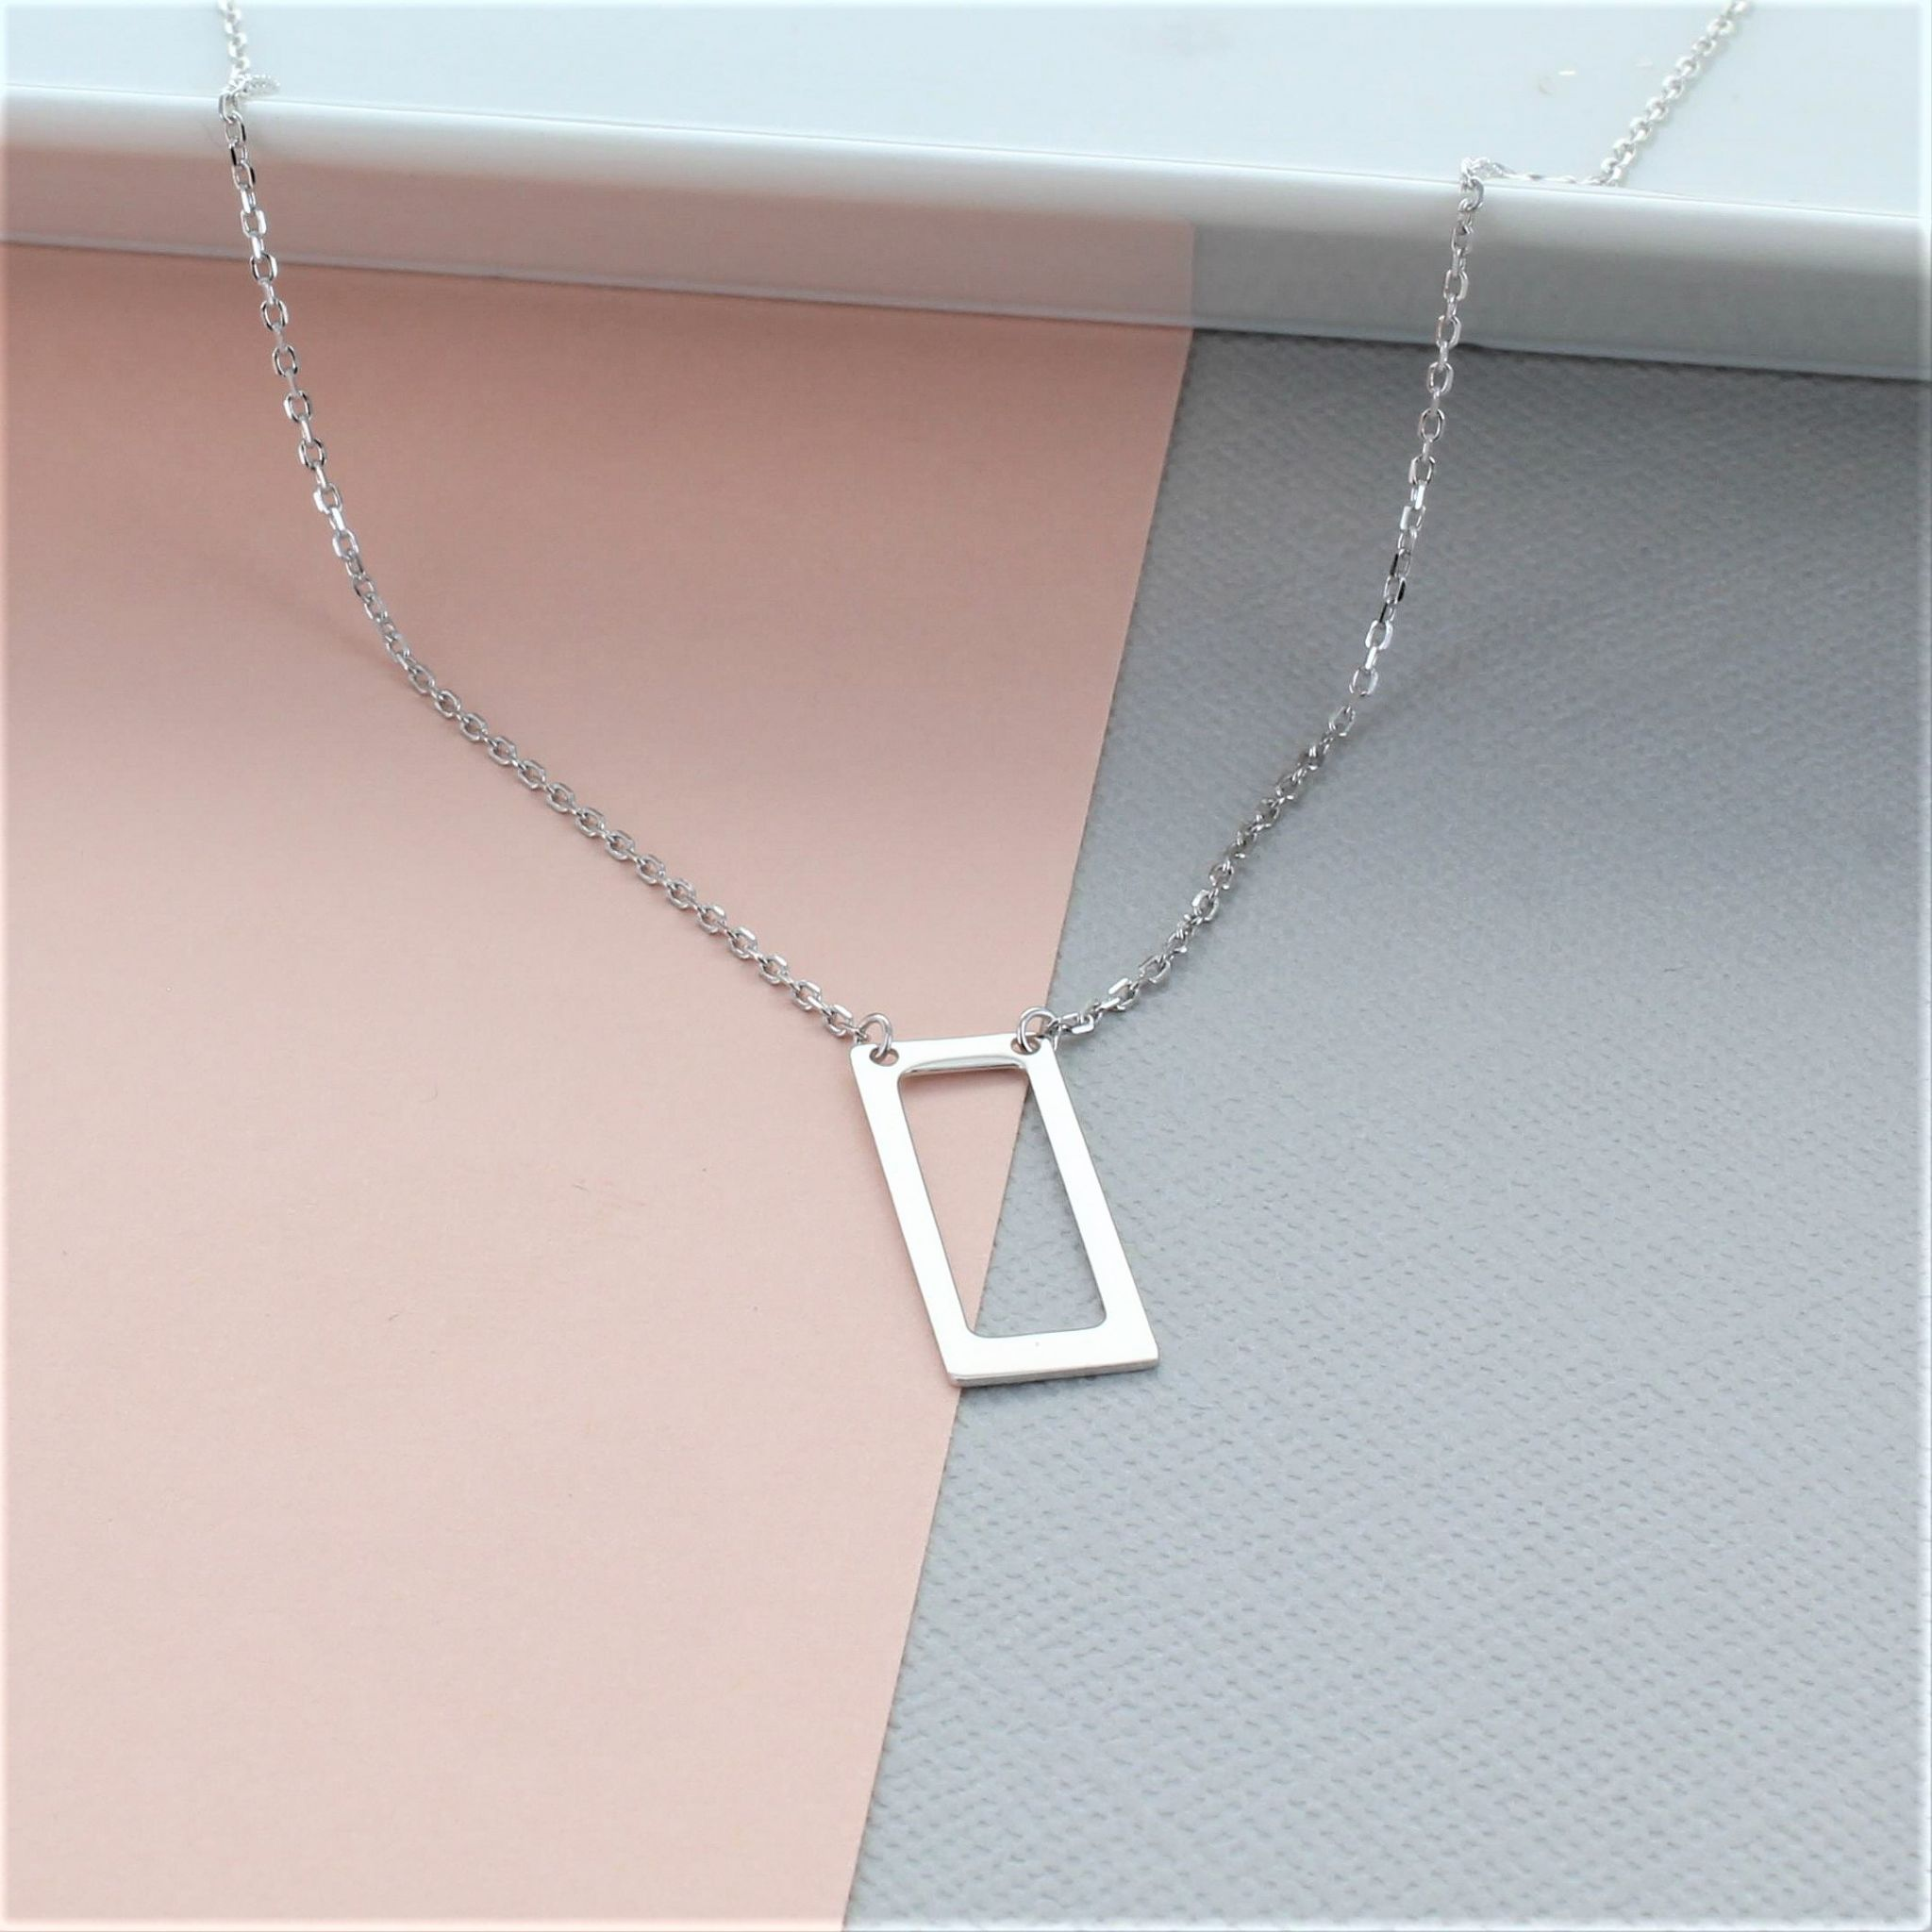 sterling silver necklace all rectangle anklet by box chain sizes link long bracelet